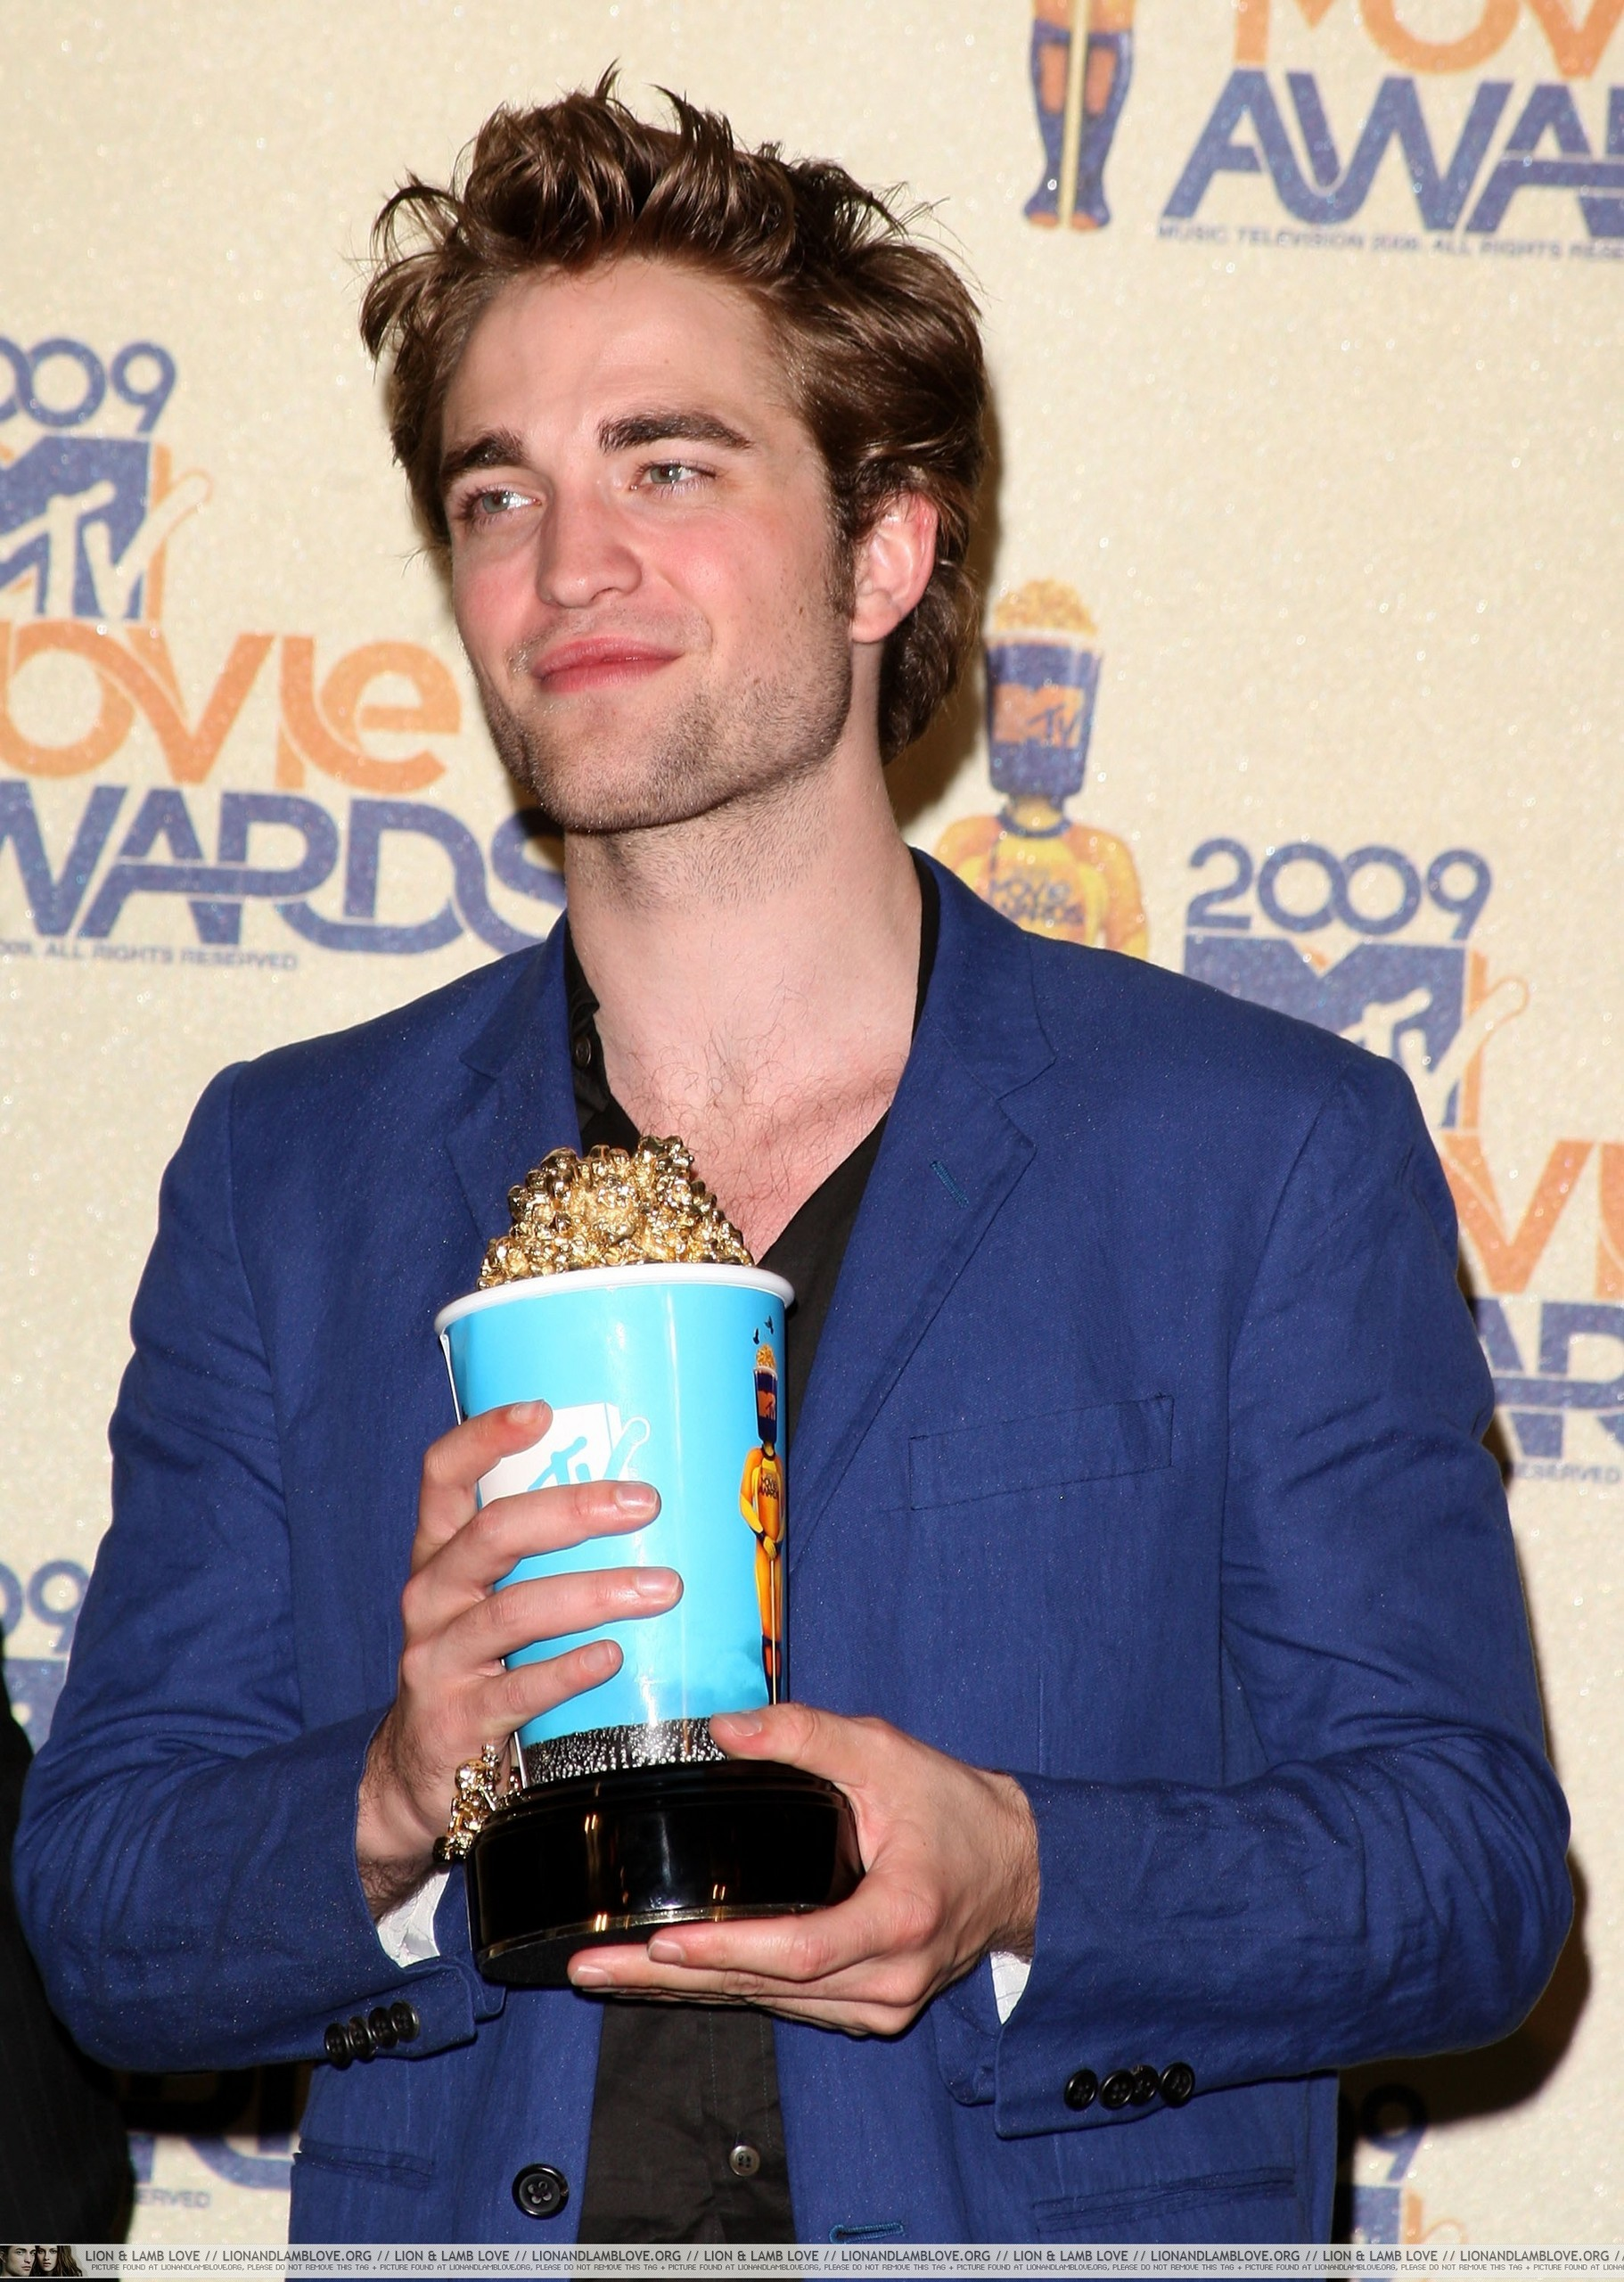 http://images2.fanpop.com/images/photos/6400000/2009-MTV-Movie-Awards-Press-Room-twilight-series-6495610-1822-2560.jpg